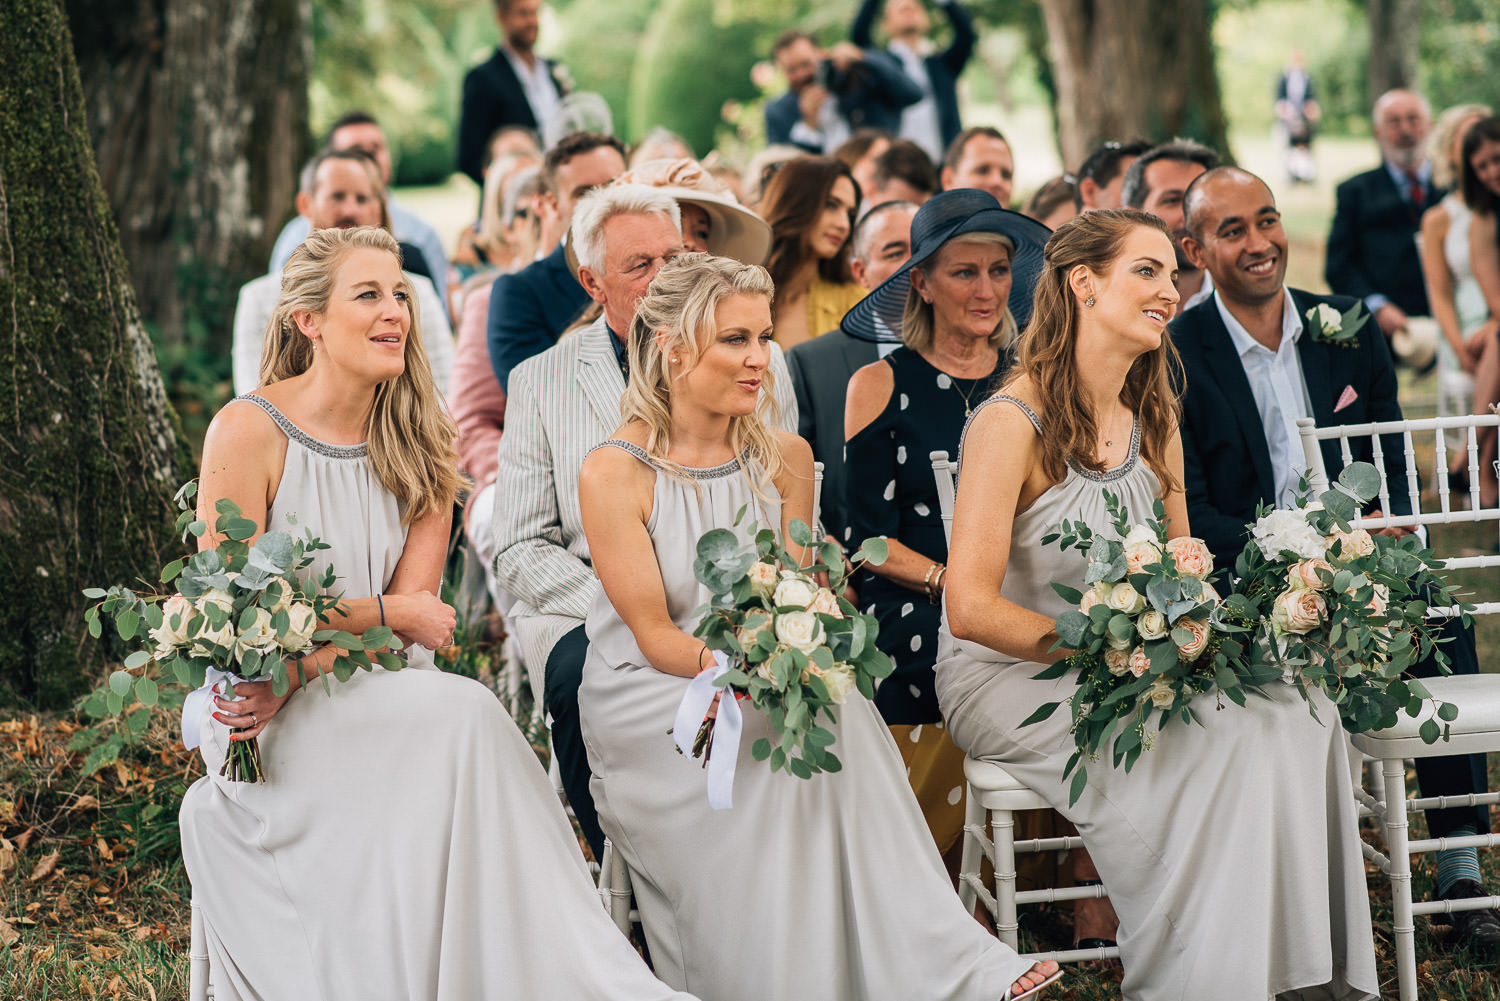 Bridesmaids smiling in outdoor wedding at chateau de la bourlie wedding by destination wedding photographer the shannons photography